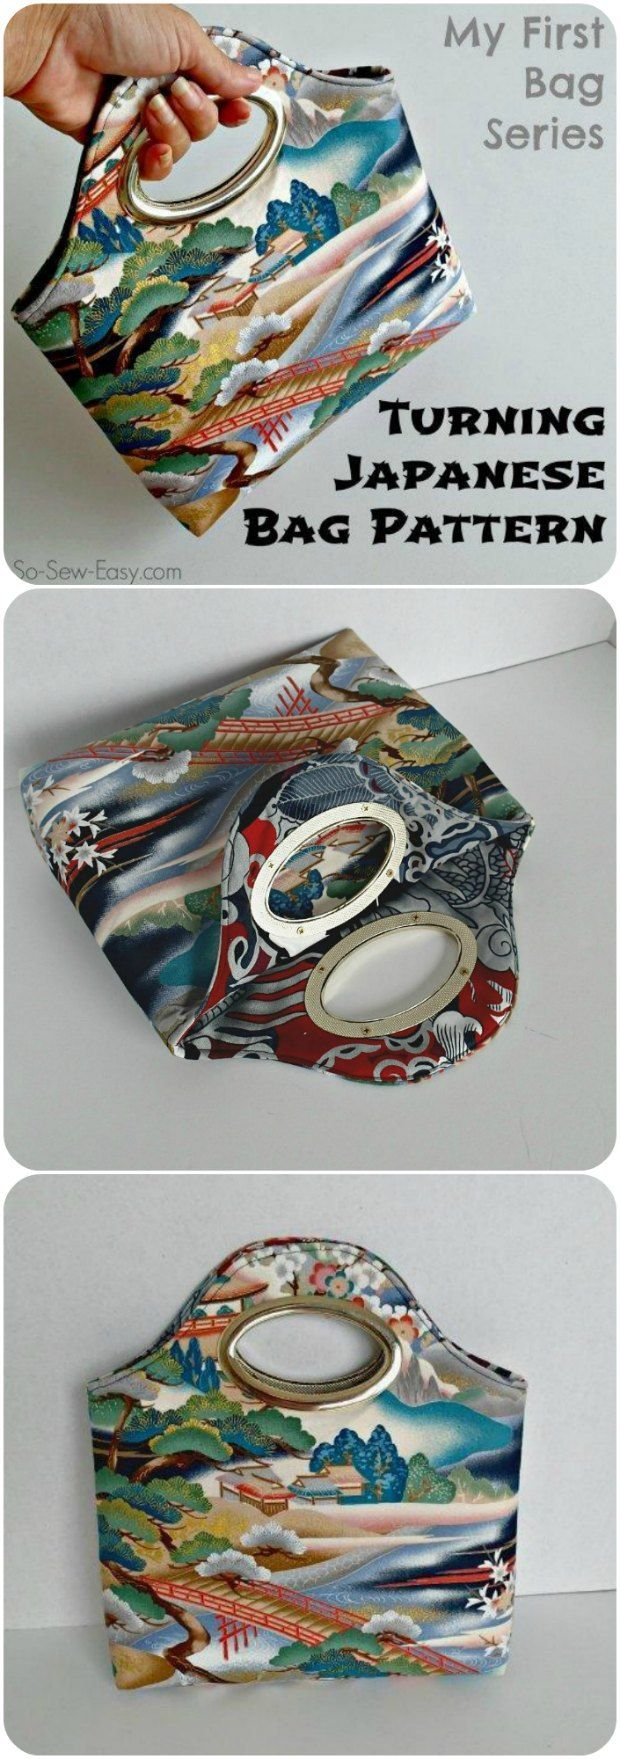 One of my favorite free bag sewing patterns.  No difficult closures, easy to sew and yet those handles make it look really good.  I taught a neighbour to sew using this pattern.  Great for your first bag.